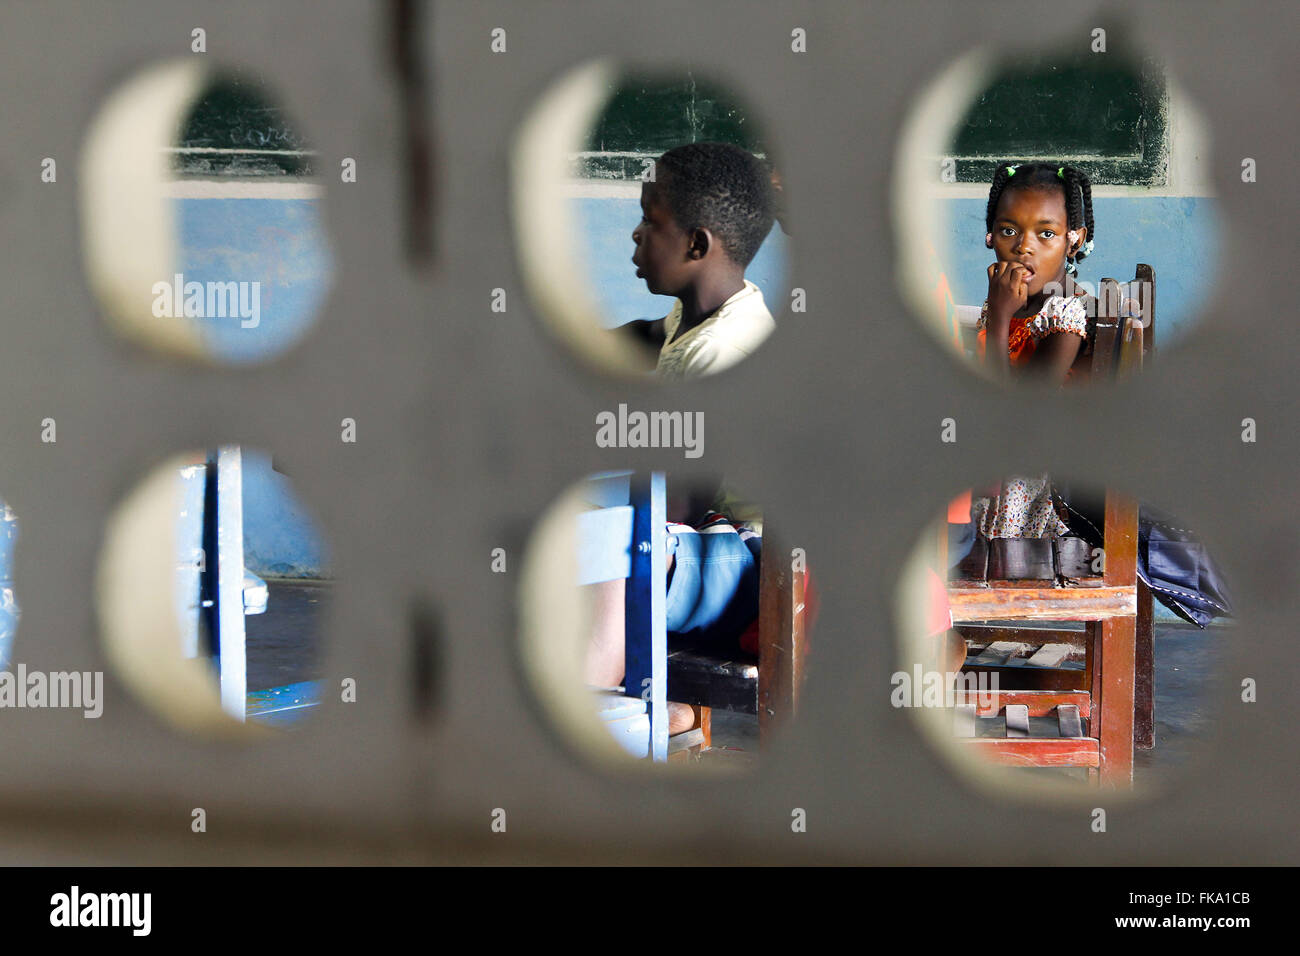 Students viewed through the perforated bricks Municipal School Councilman Manuel Domingos Pereira - Stock Image